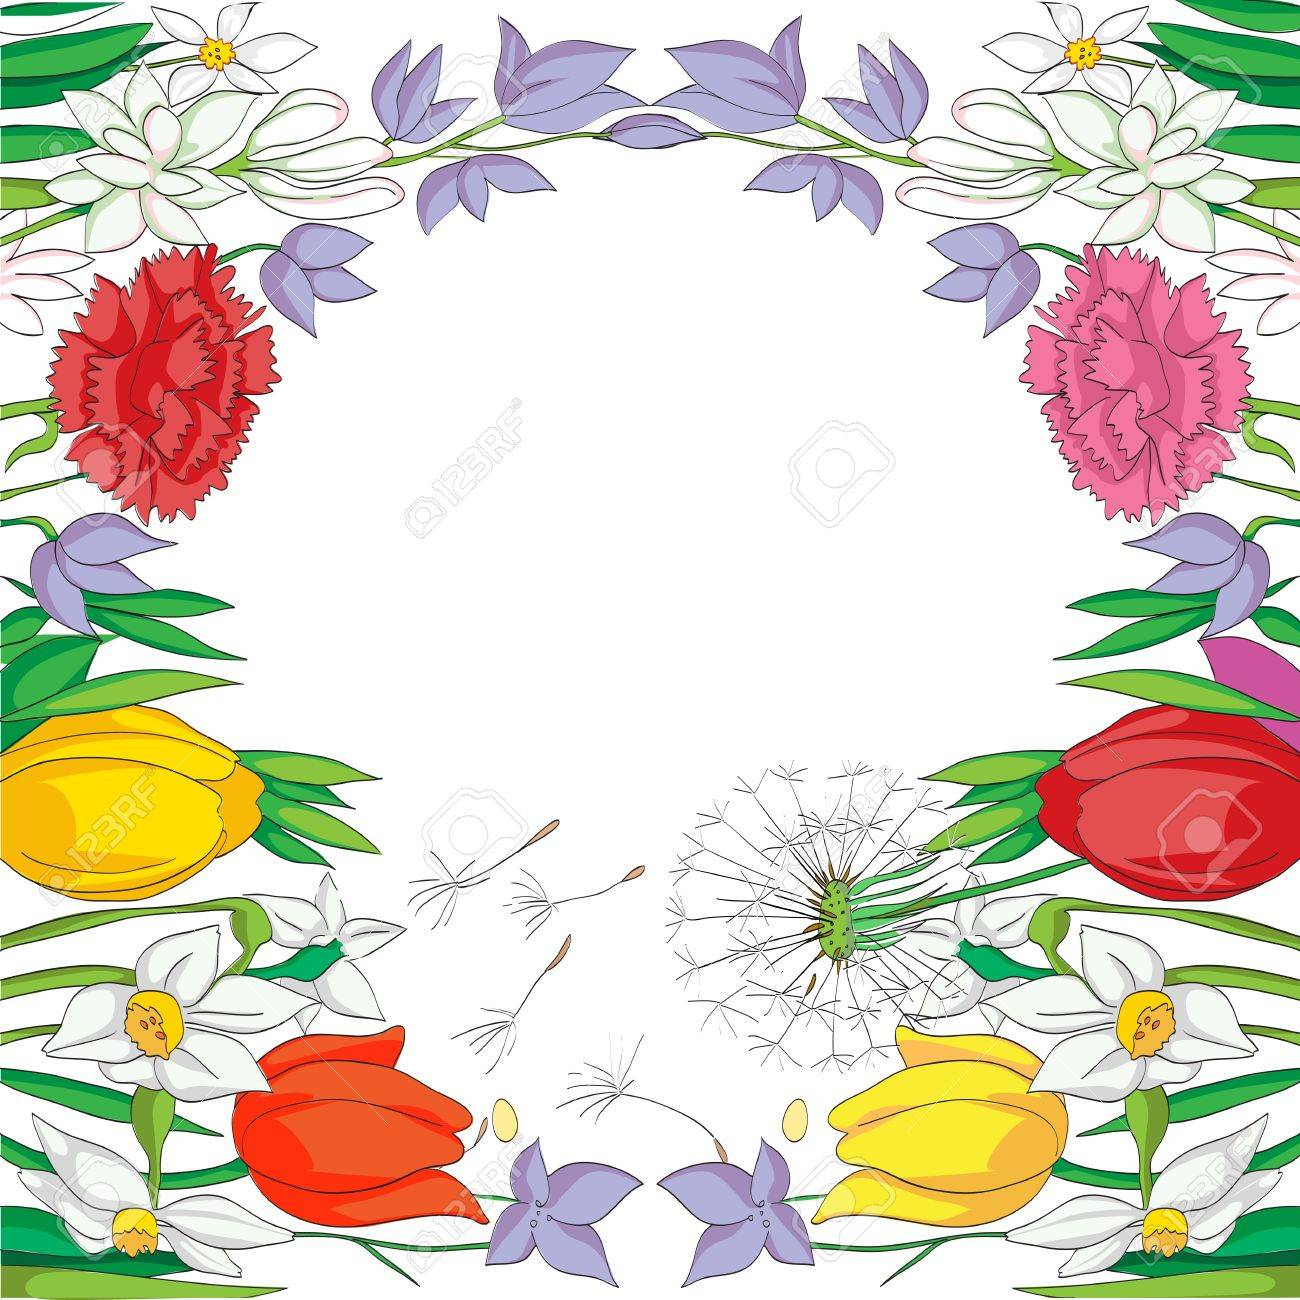 illustration of a spring card with a frame made of flowers, drawing  over a white background Stock Vector - 18848989